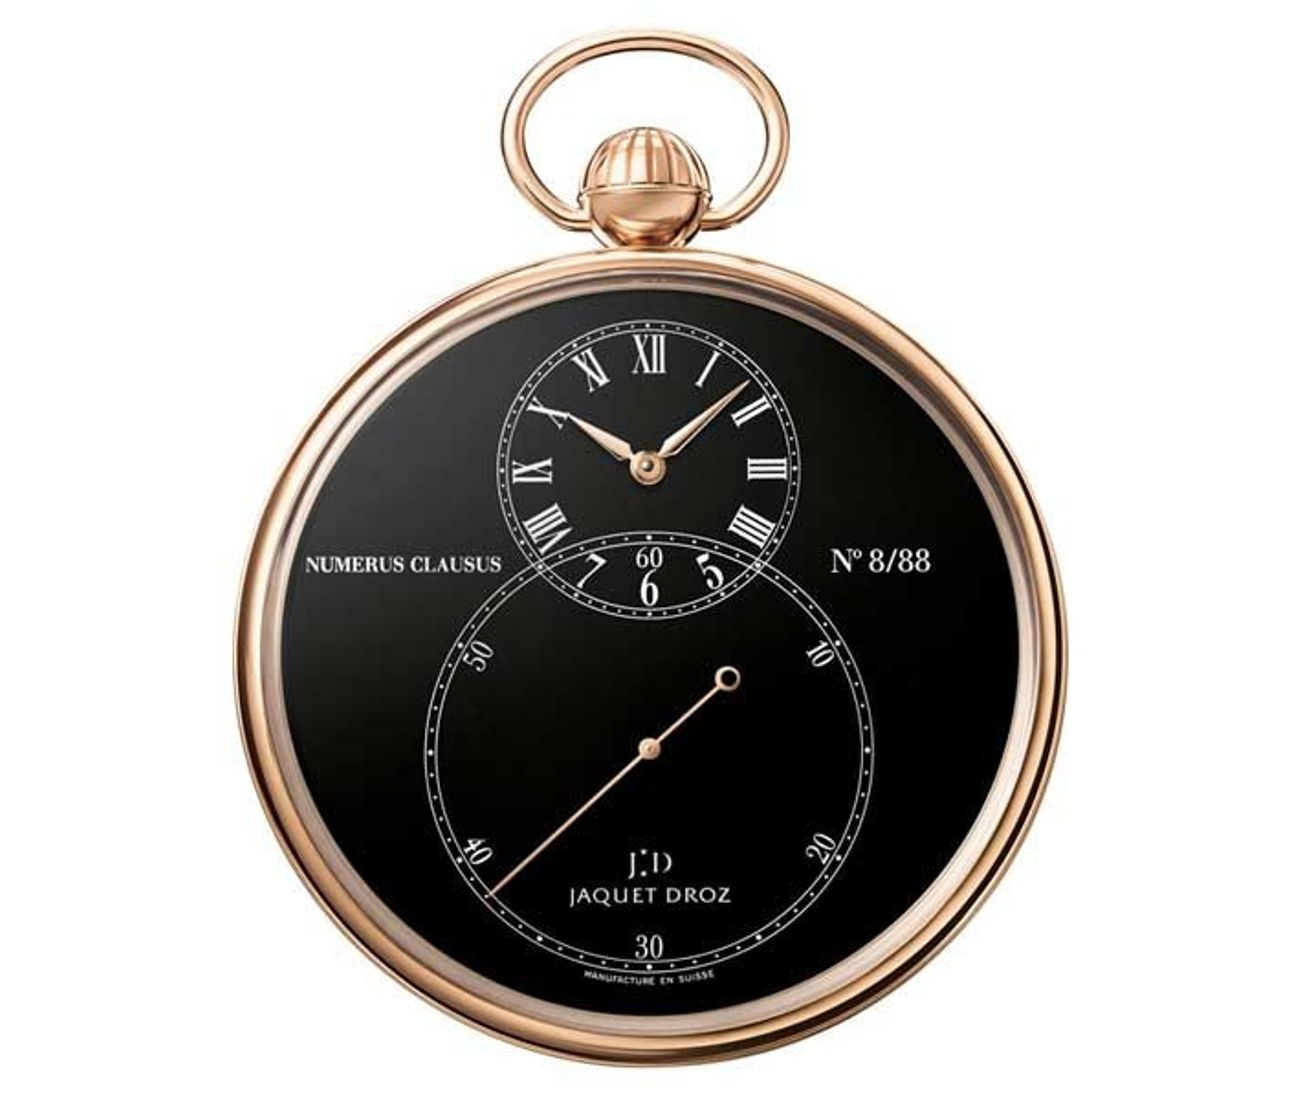 The Pocket Watch Black Enamel